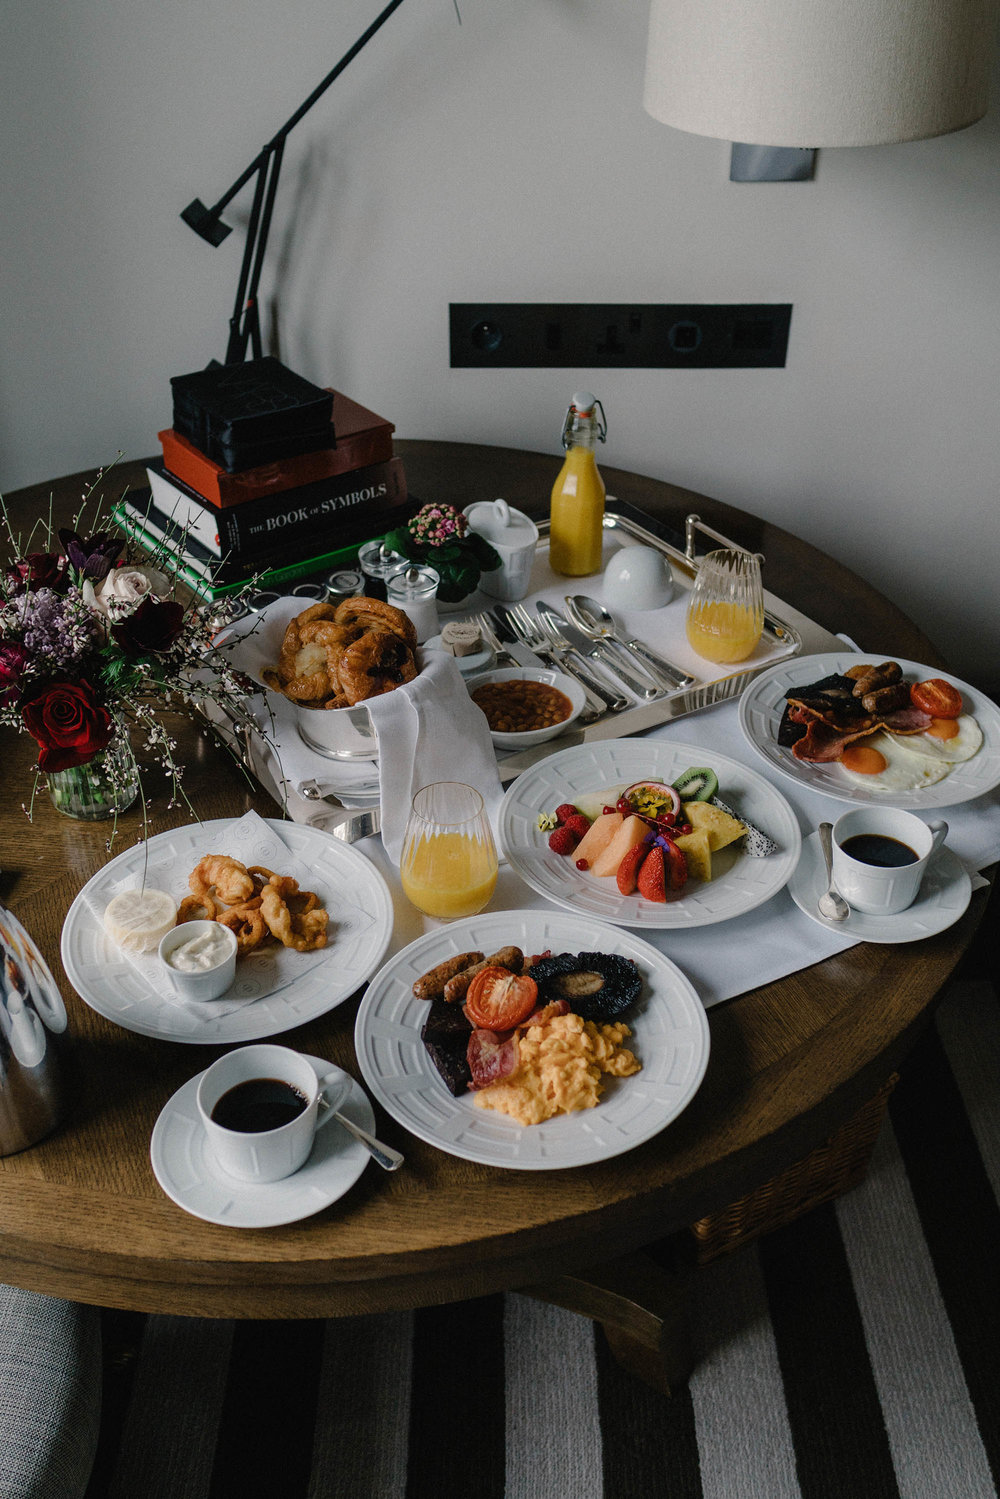 In-room breakfast spread at  Rosewood London